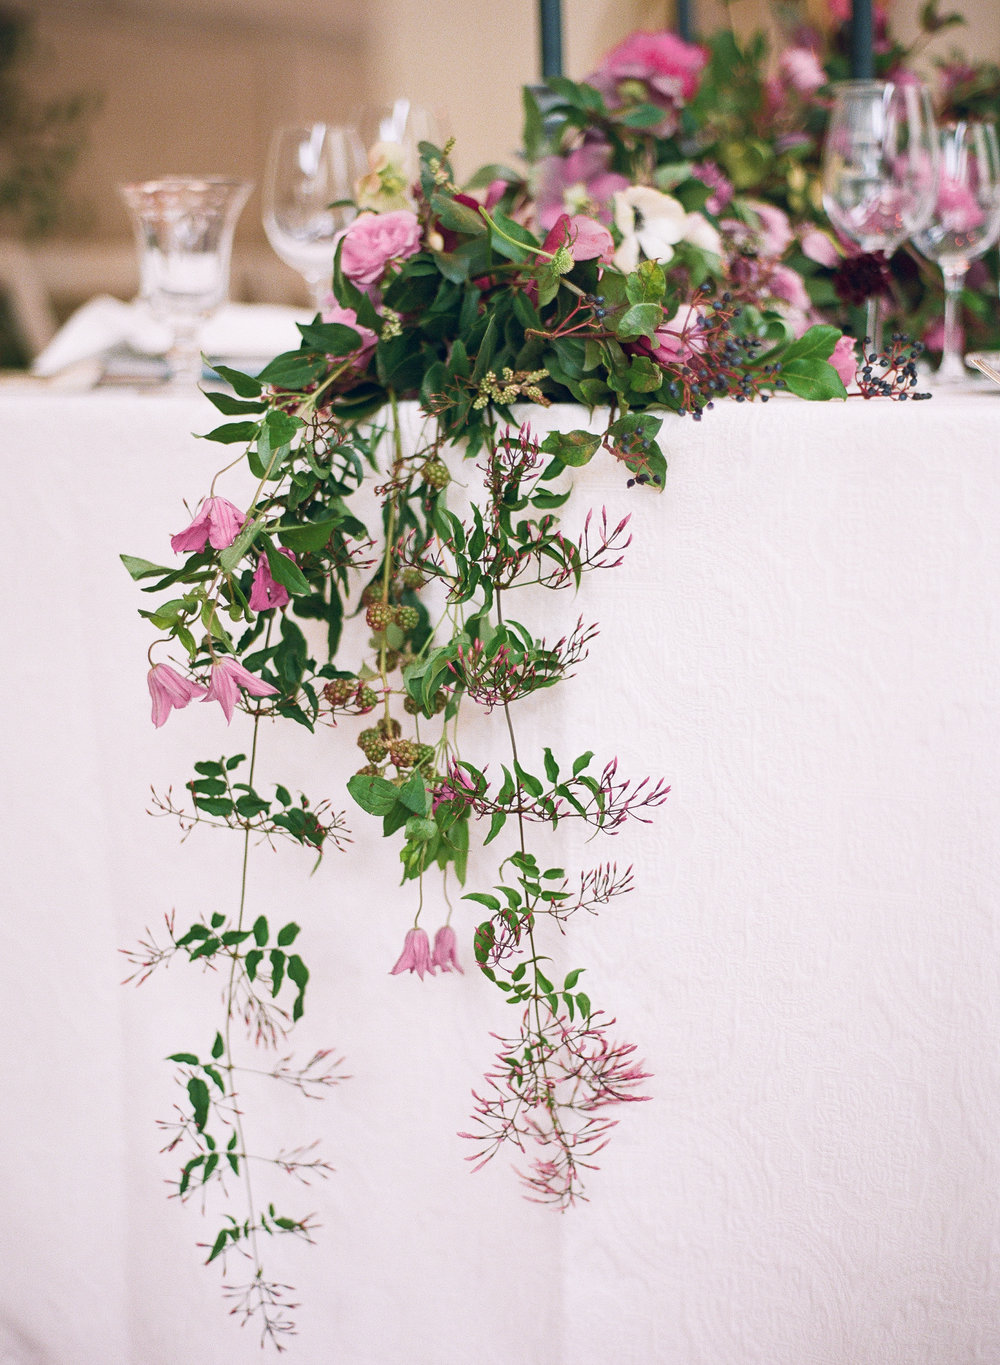 Indoor garden wedding inspiration featured in Style Me Pretty